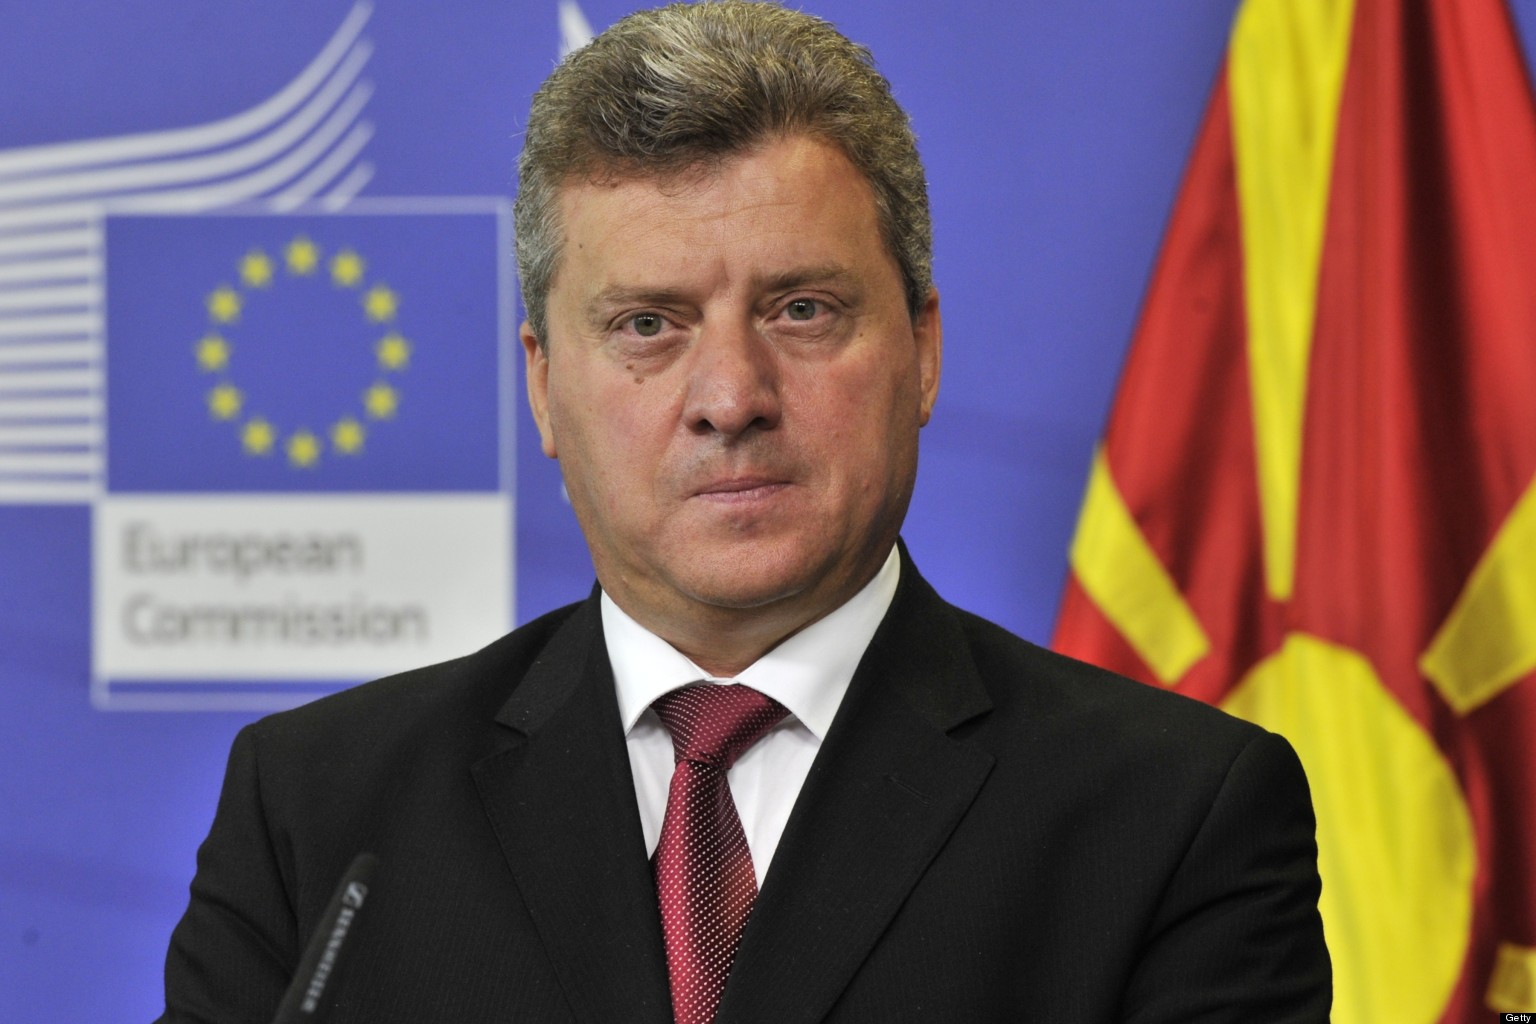 President Ivanov reacts about the expulsion of the Russian diplomat, Dimitrov justifies the decision